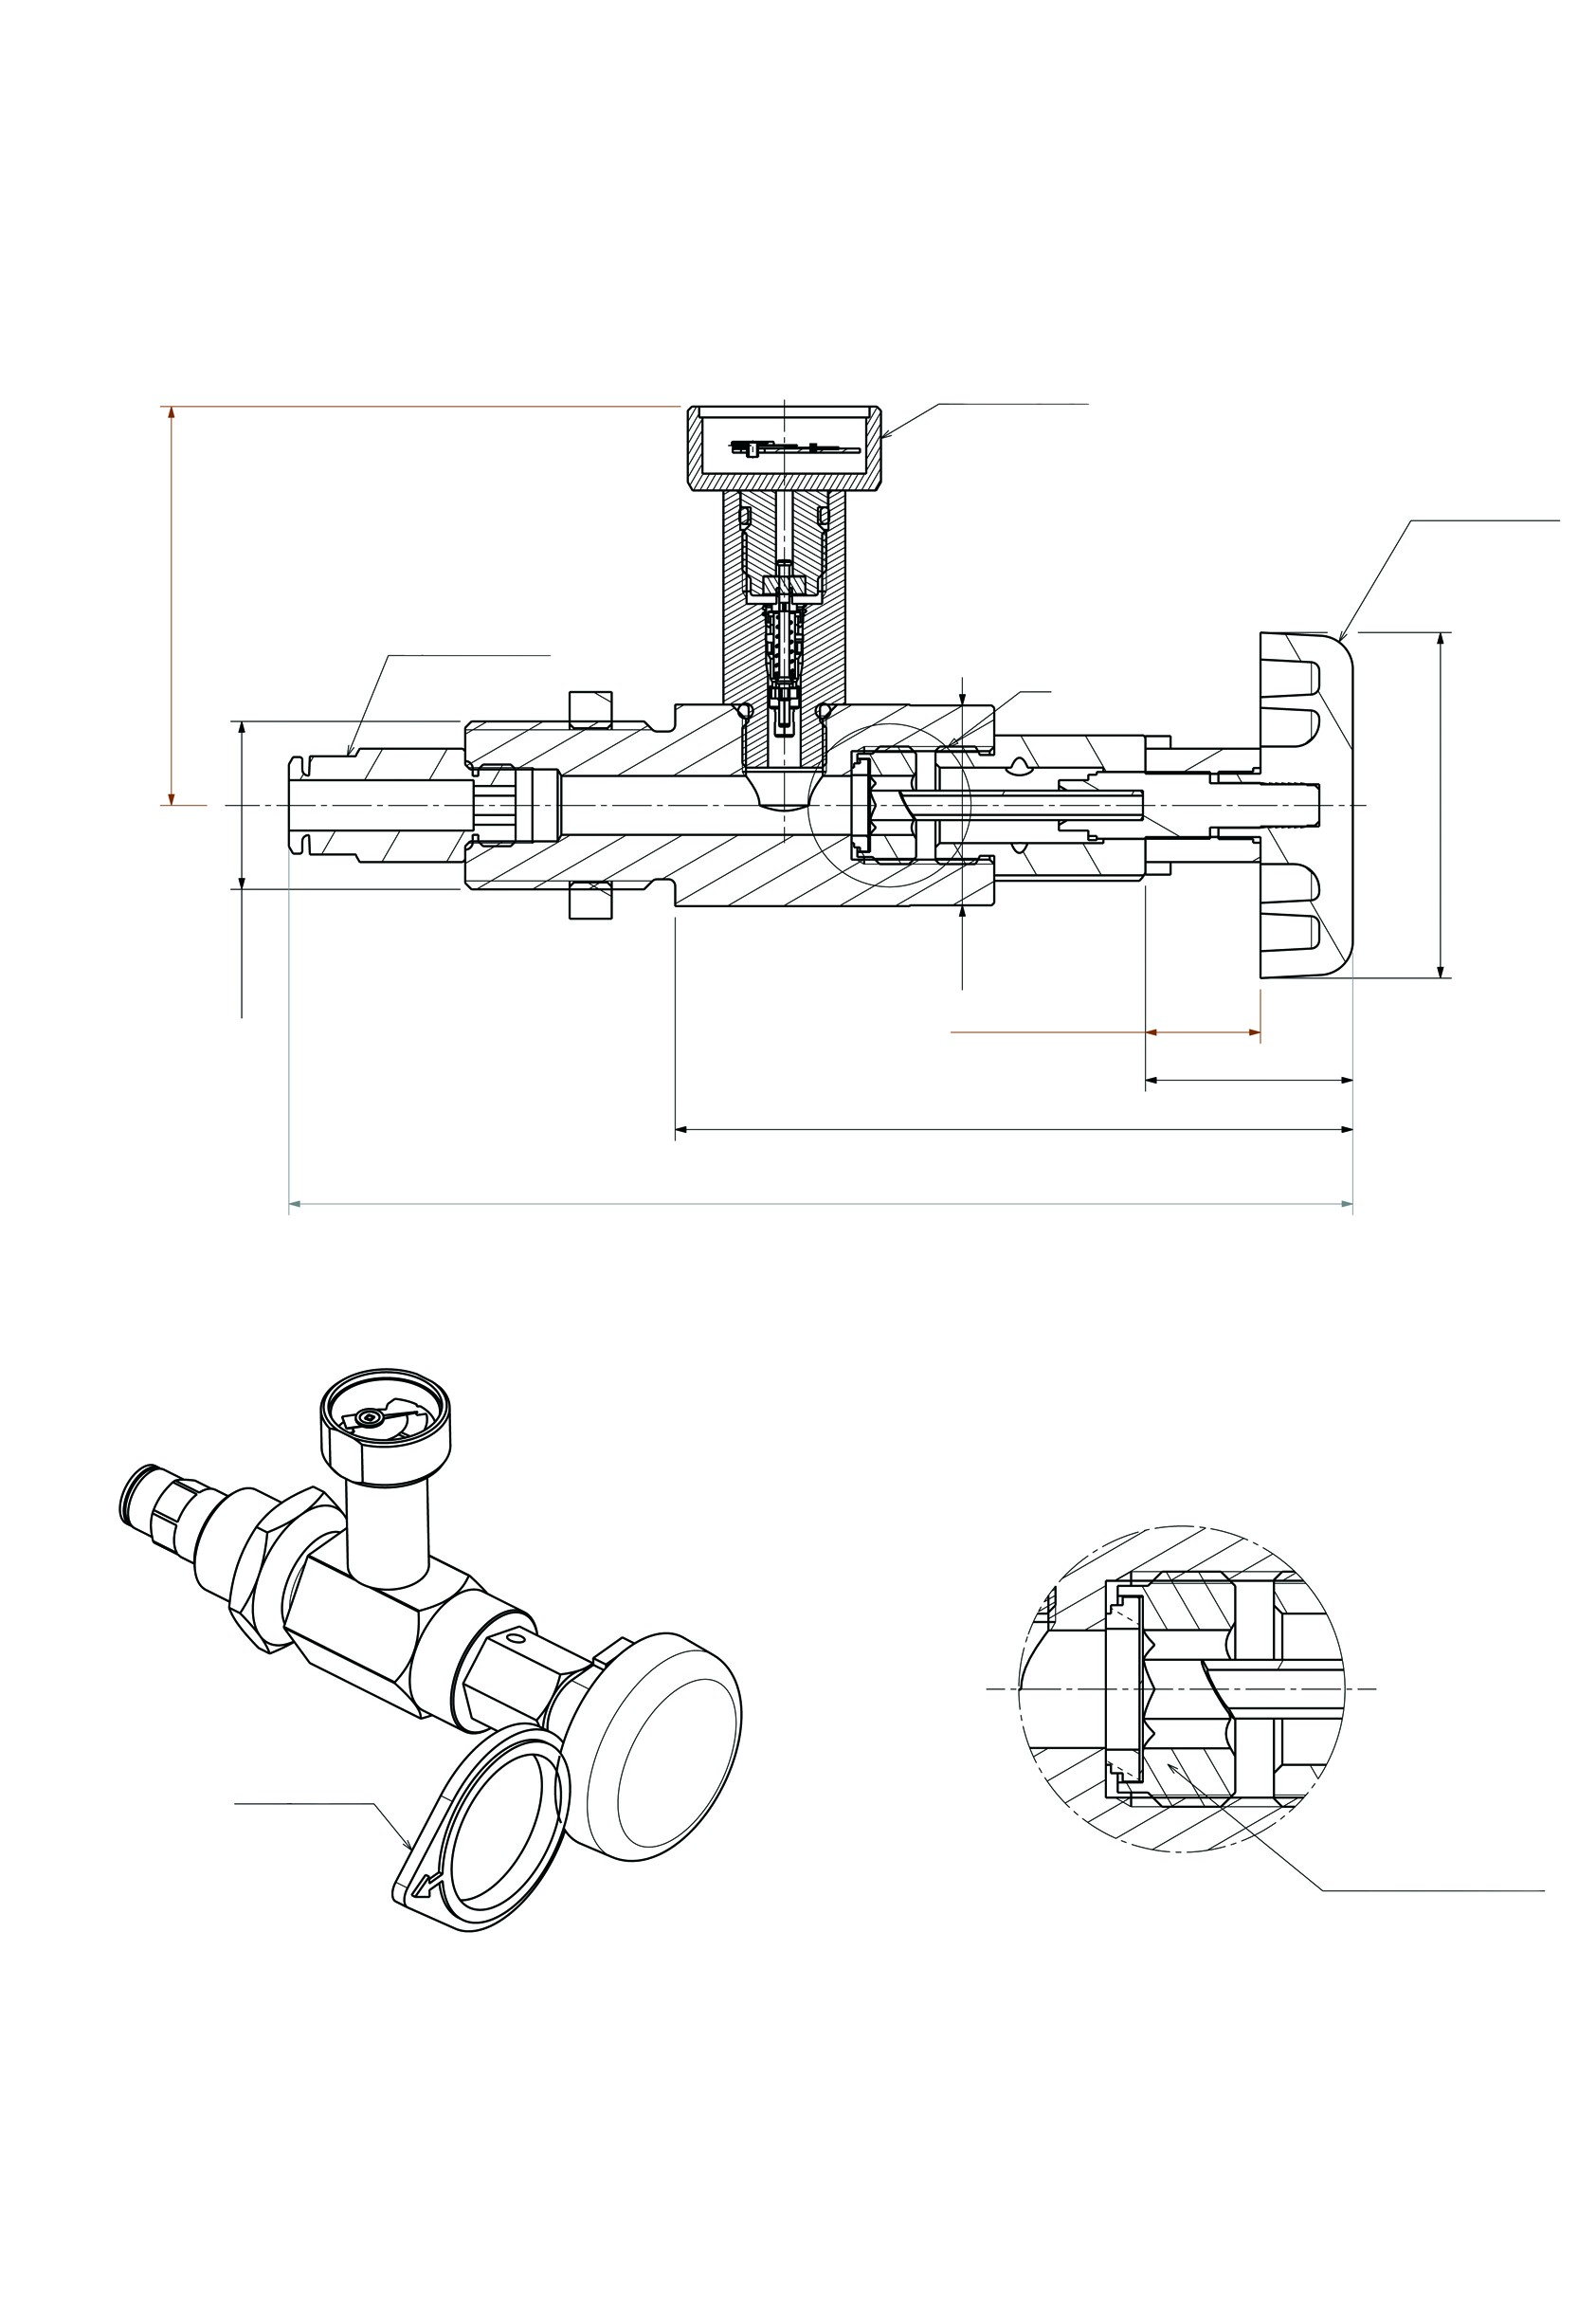 Fire Extinguisher Parts Diagram Design Installation and Maintenance Manual Pdf Of Fire Extinguisher Parts Diagram